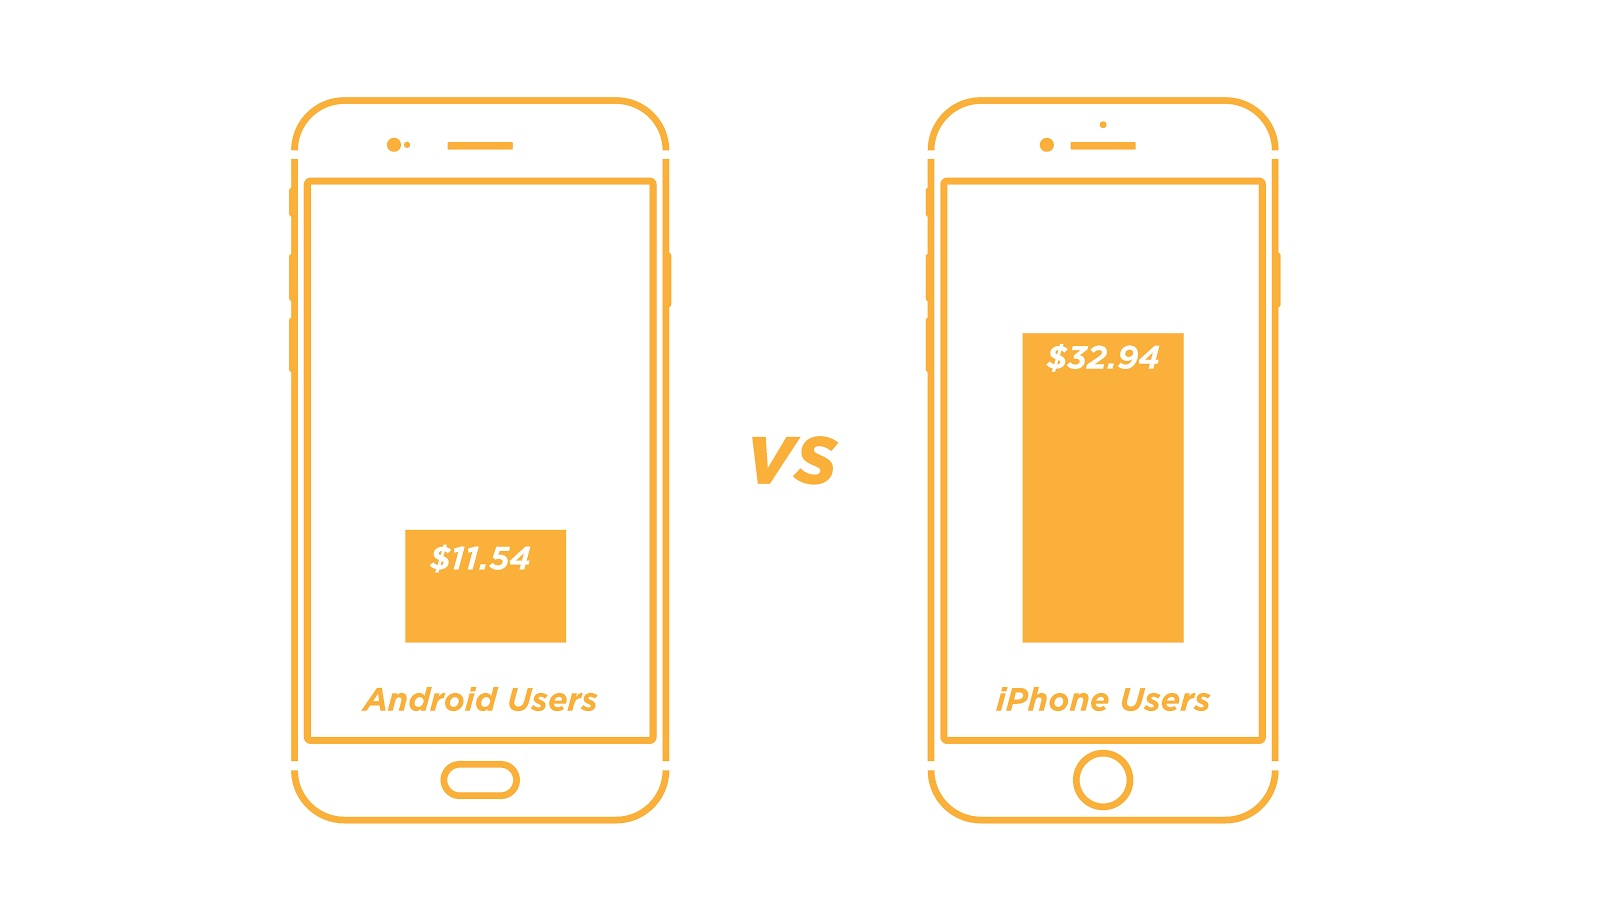 iPhone vs Android: Which Users Have the Highest AOV? - Moz